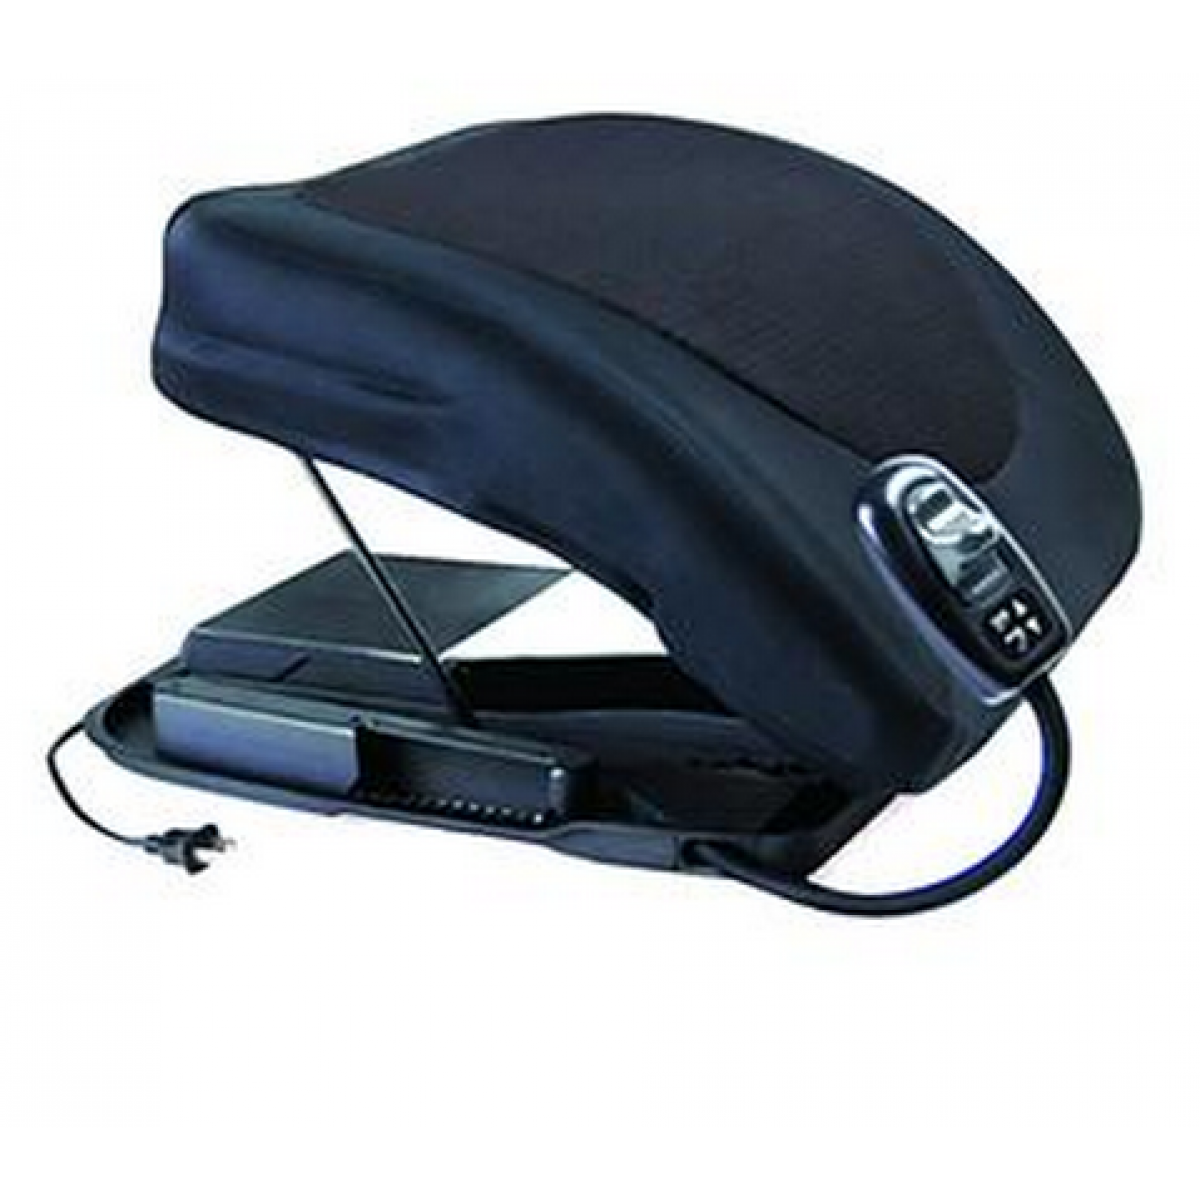 Uplift Technologies Premium Power Lifting Seats On Sale